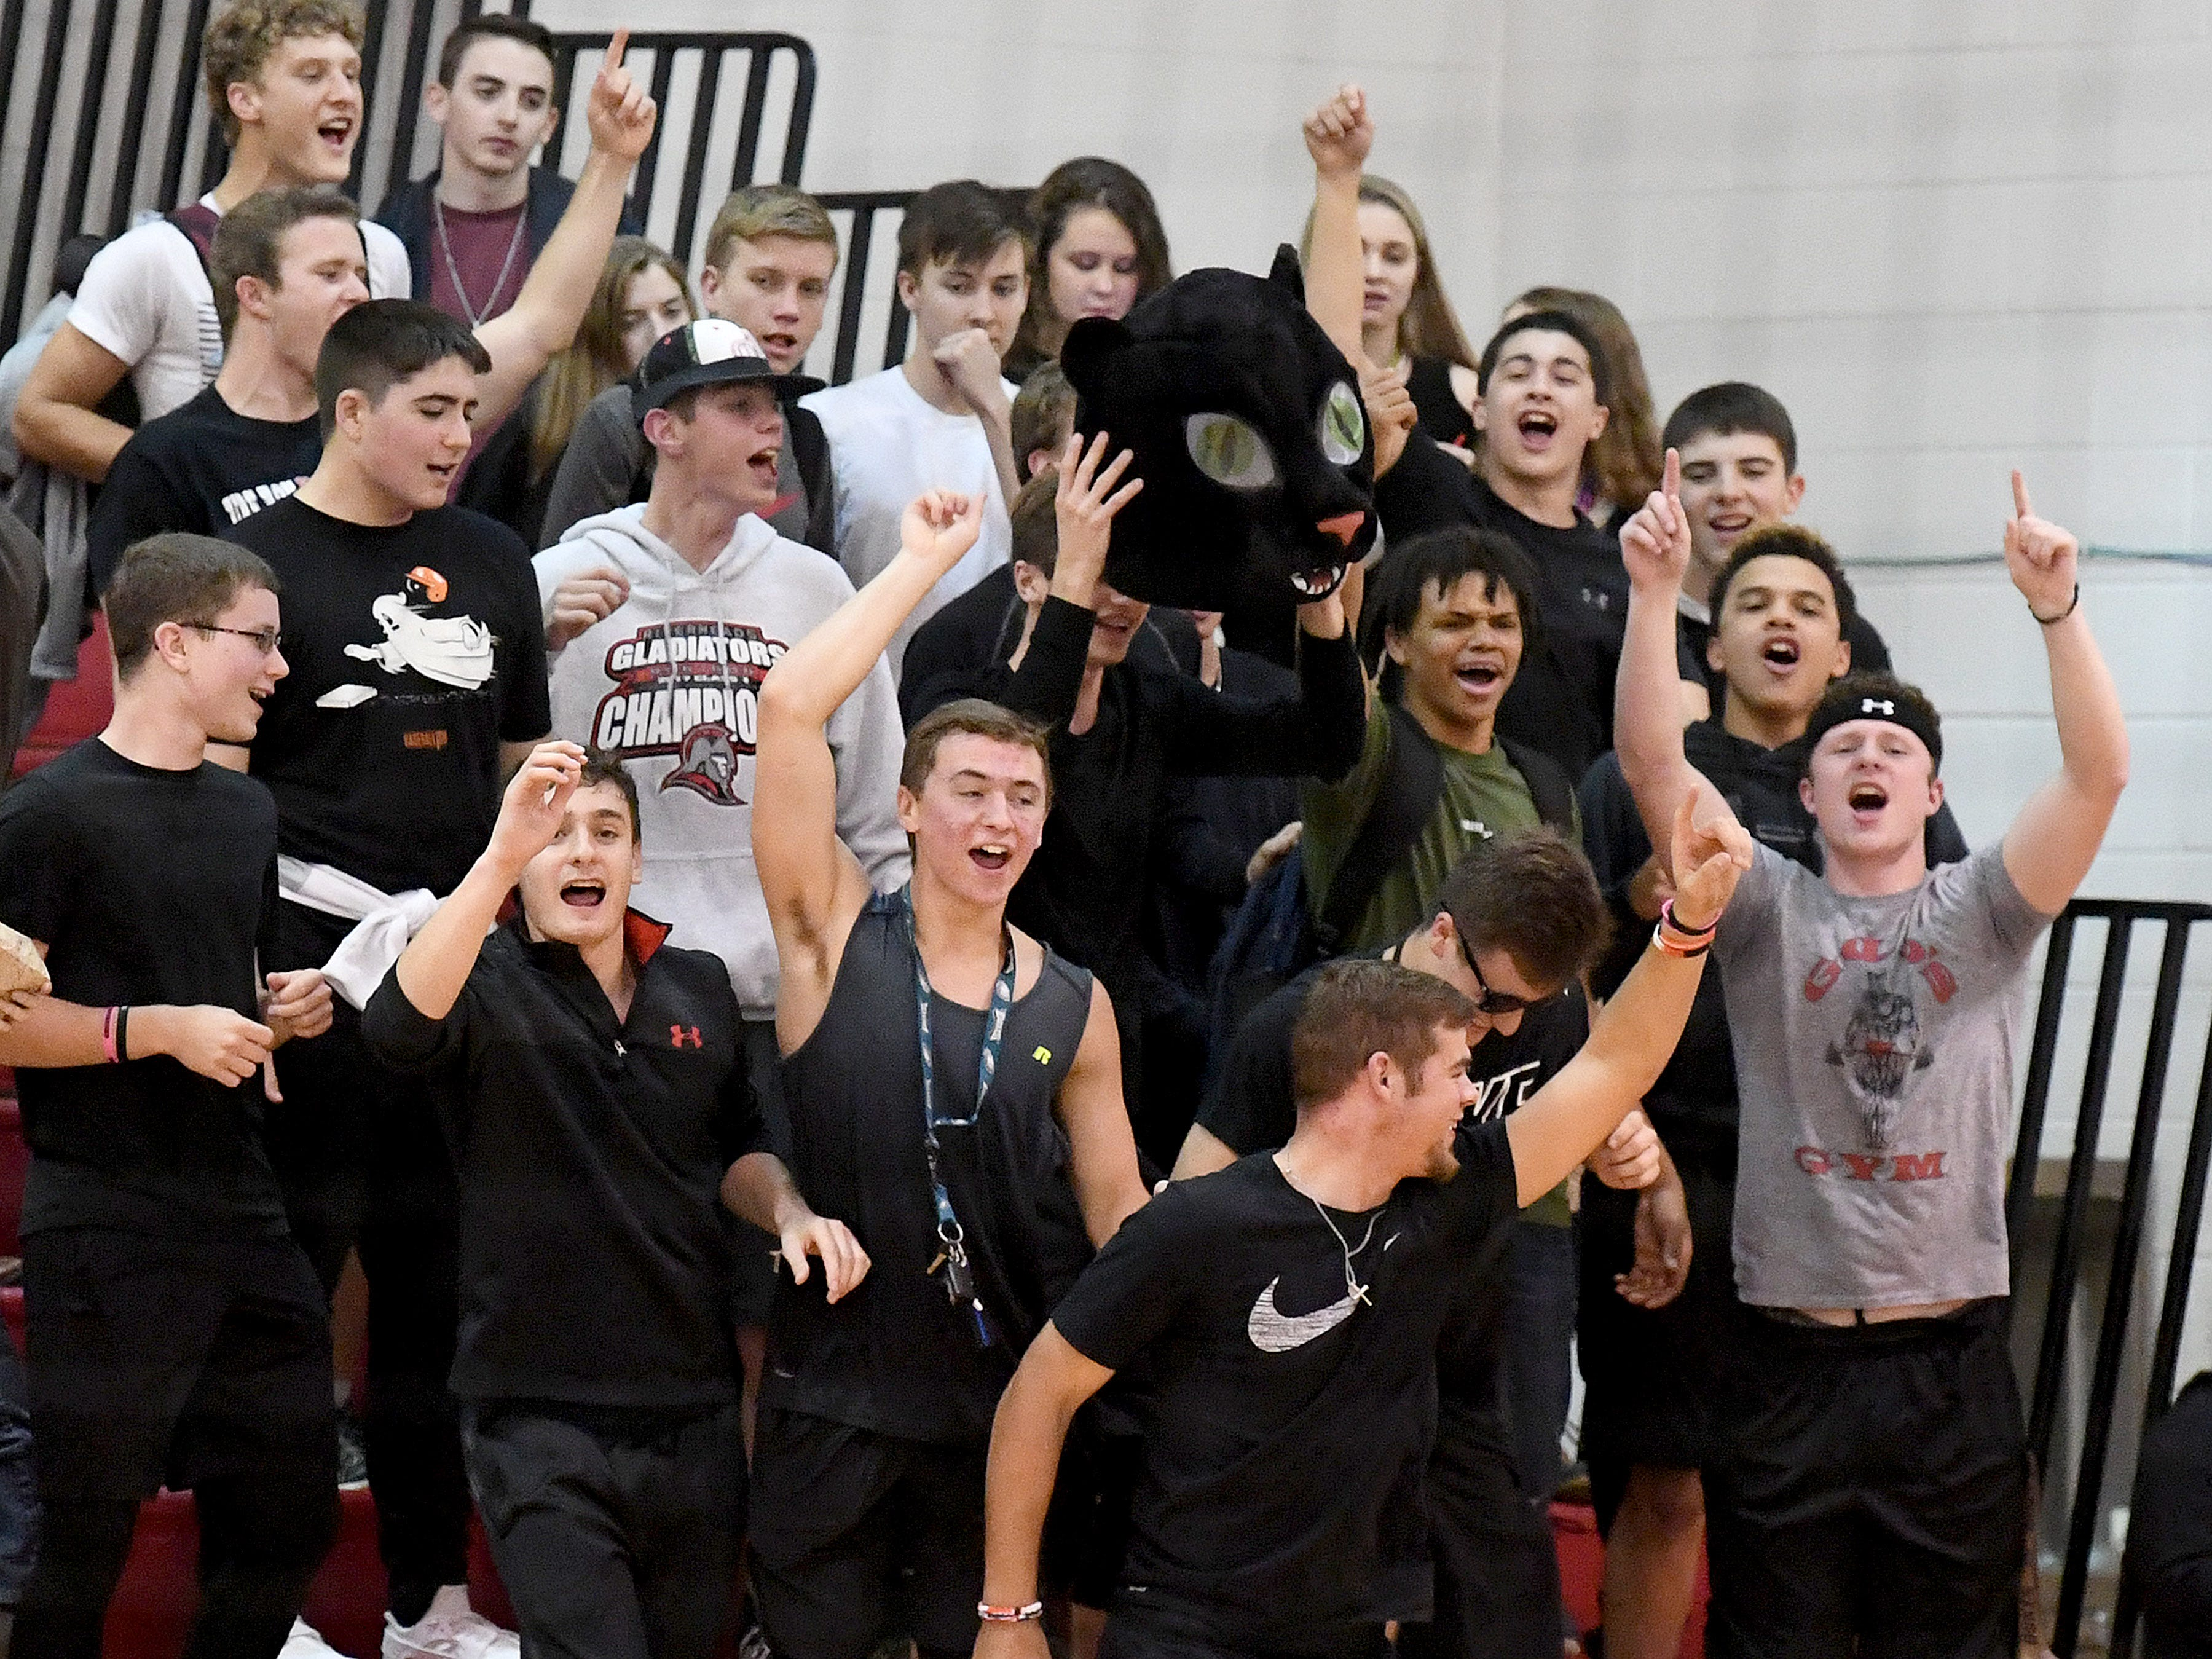 Riverheads fans celebrate after their team sweeps Altavista and wins the Region 1B volleyball championship in Greenville on Wednesday, Nov. 7, 2018.